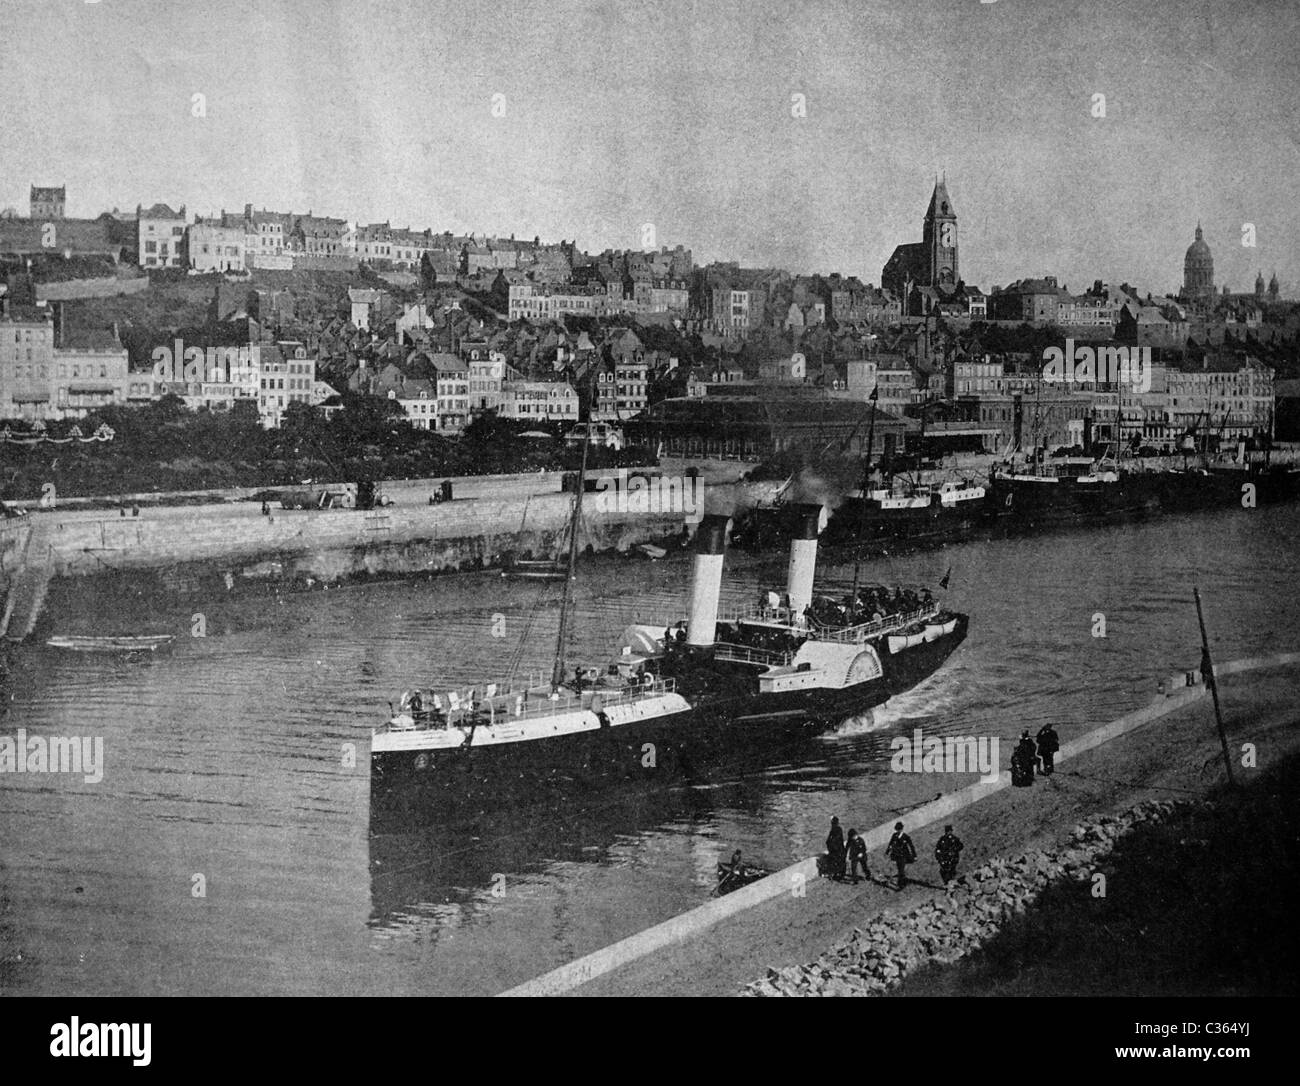 One of the first autotypes of Boulogne-sur-mer, France, historical photograph, 1884 - Stock Image